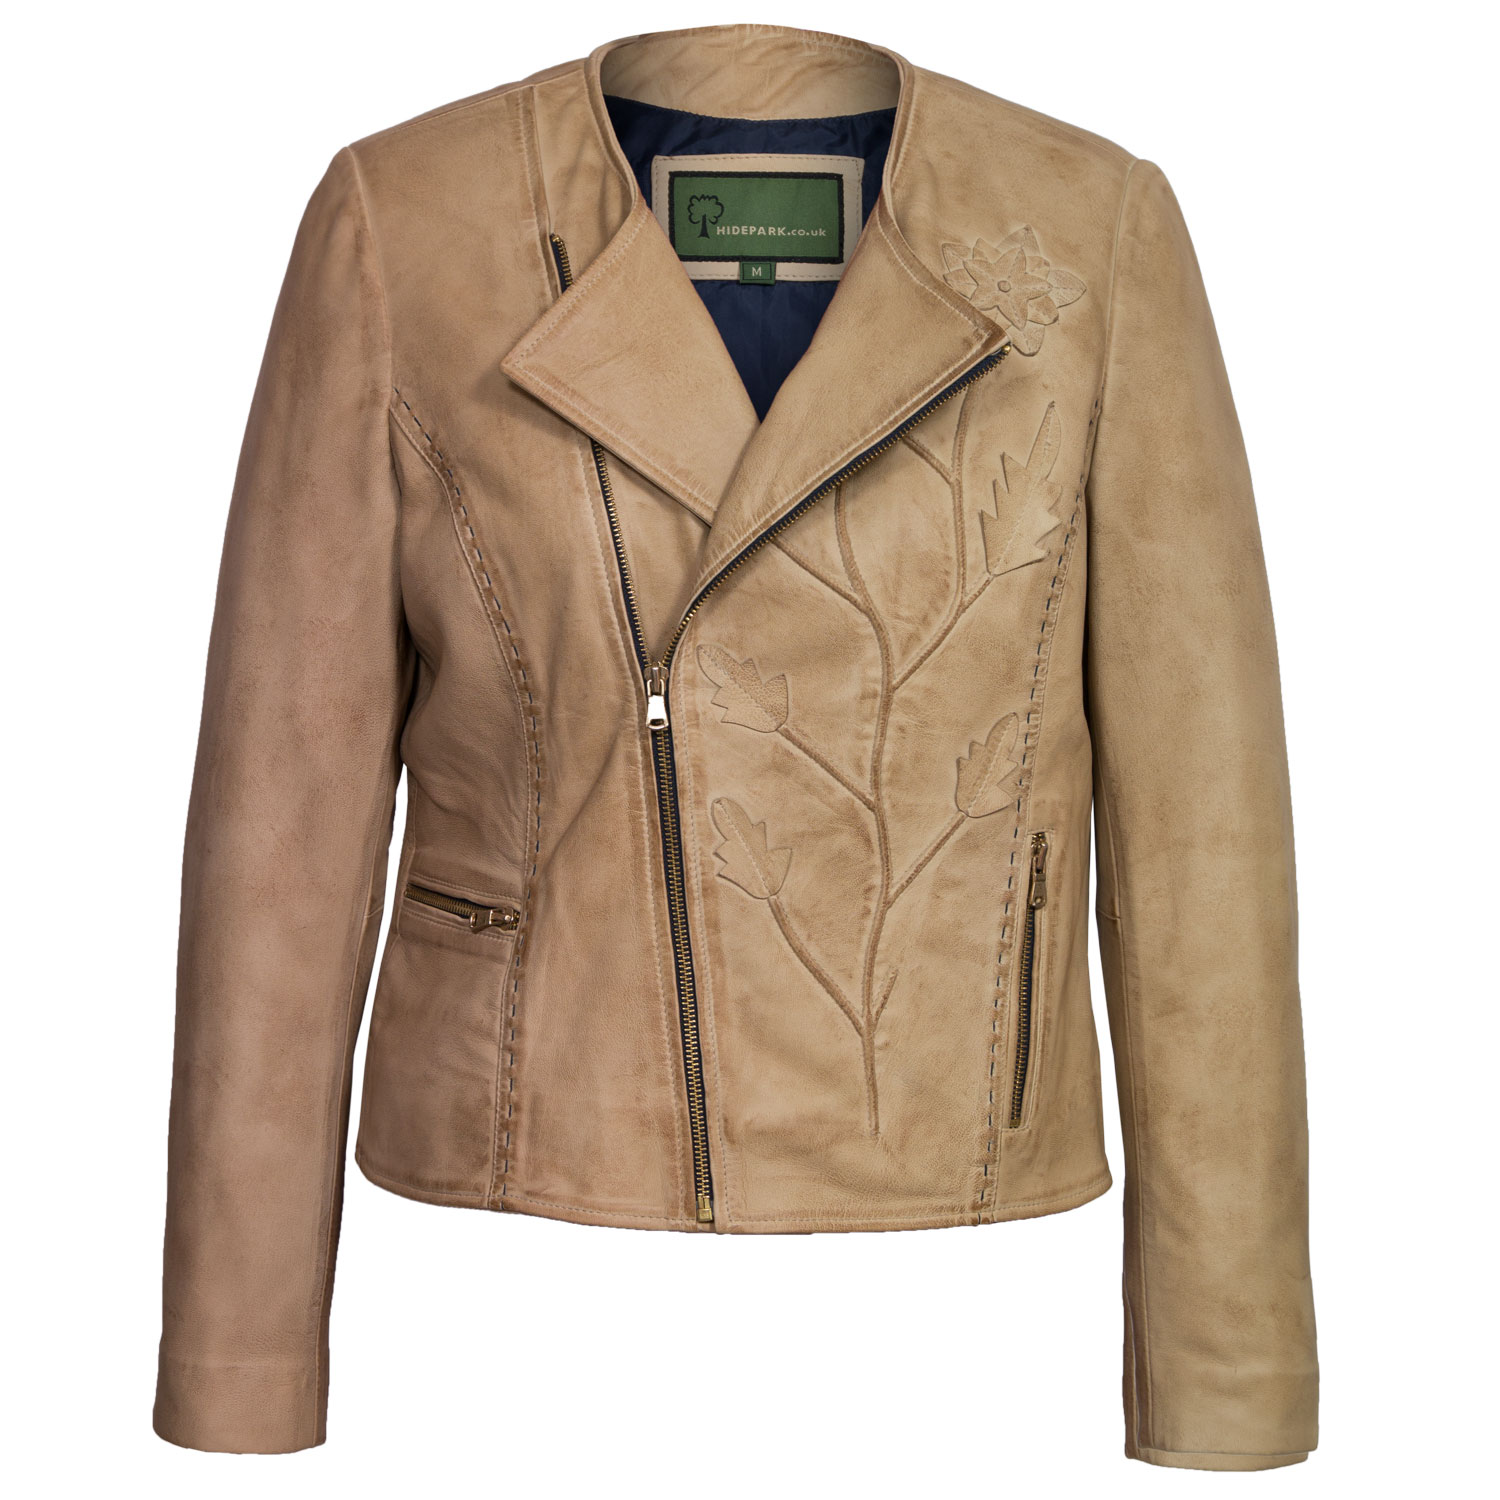 Women's Sand Collarless Leather Jacket: Lotty